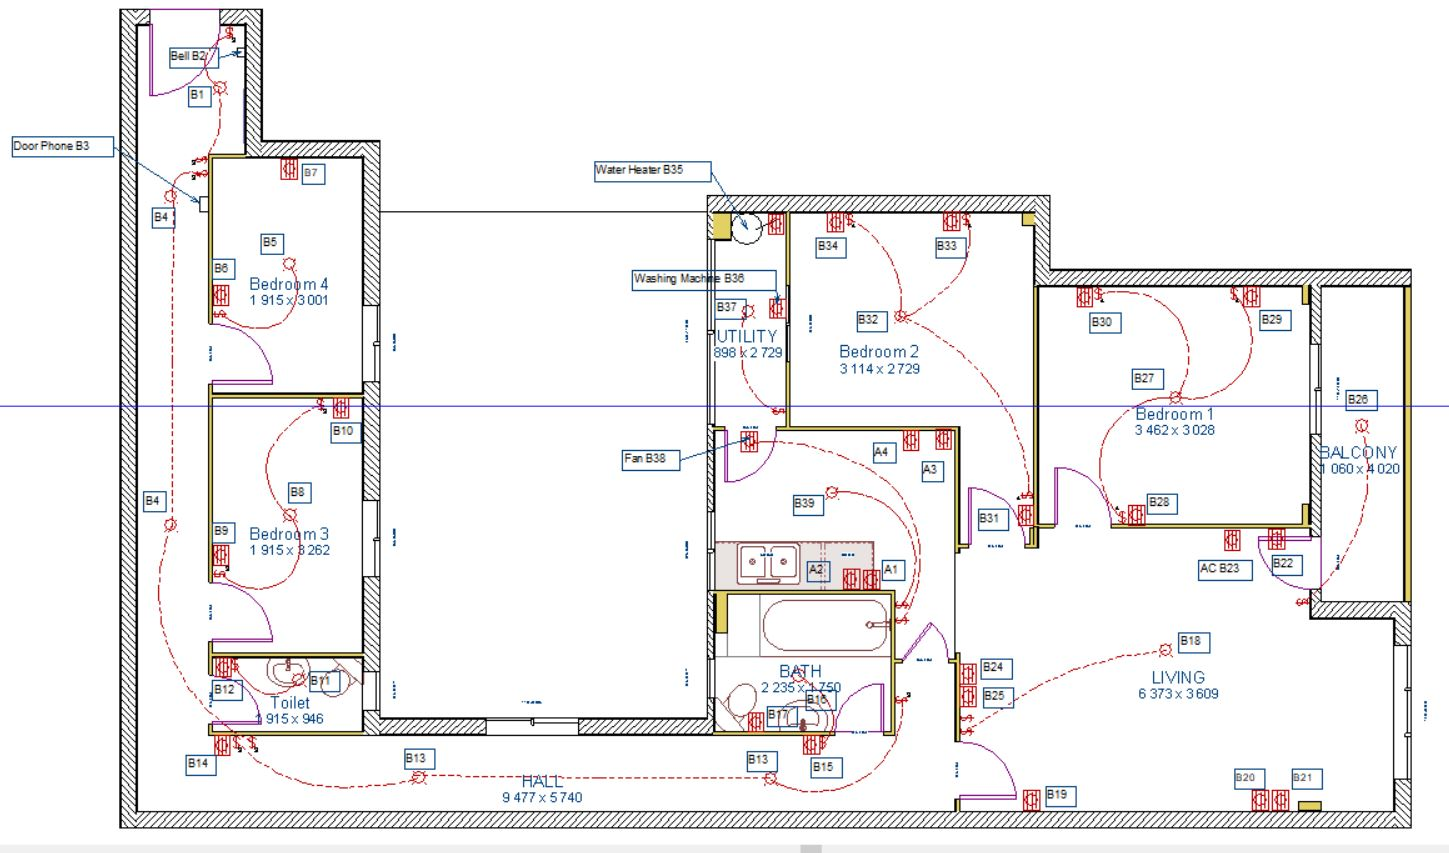 hight resolution of electrical wiring in spanish wiring diagram show home wiring in spanish home wiring in spanish